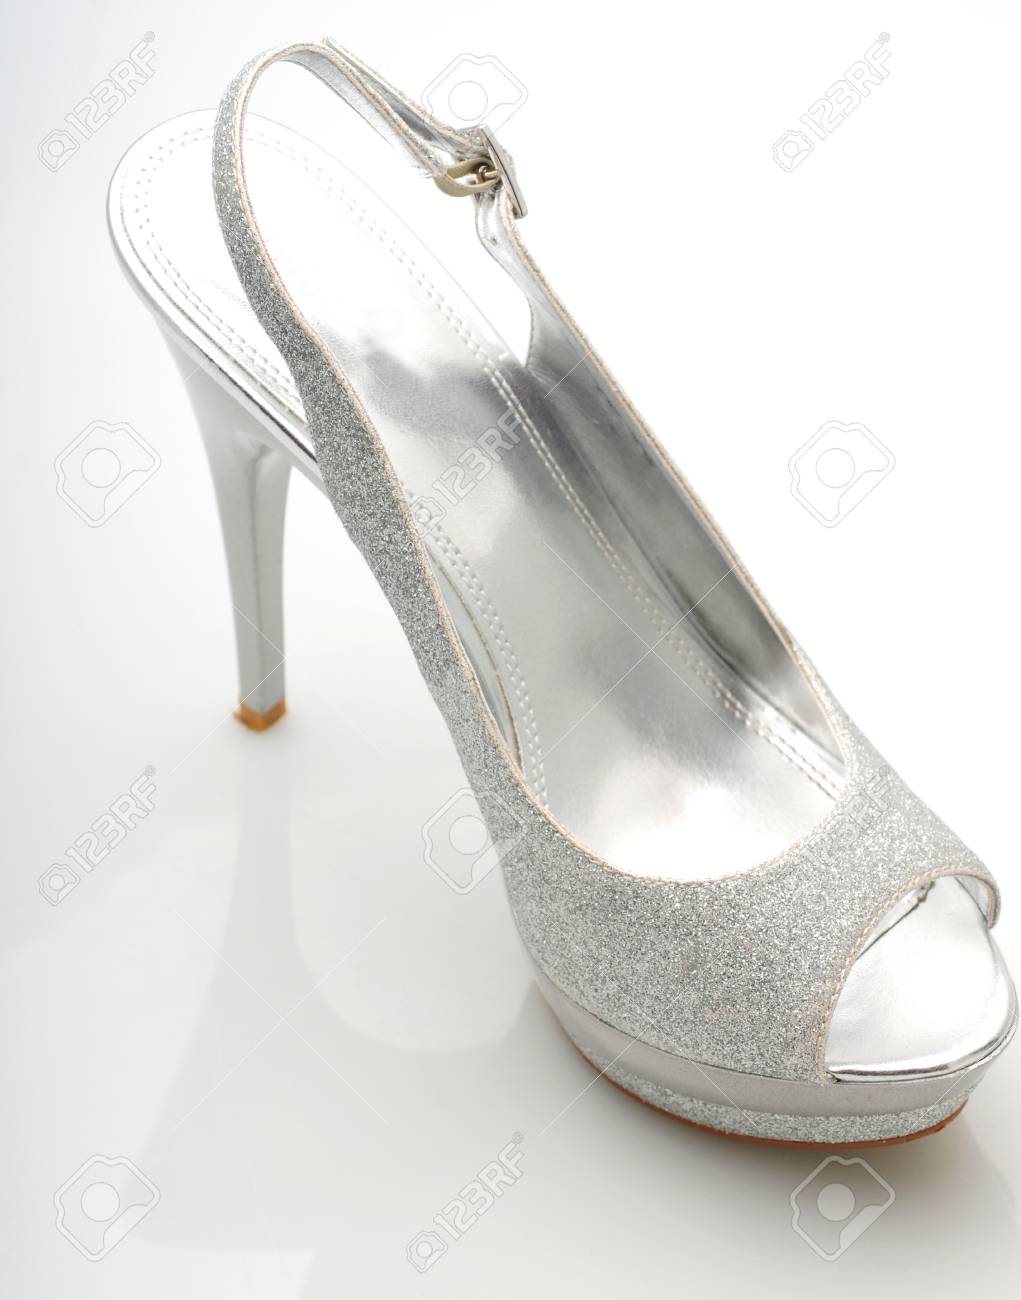 e21db2d920 trendy Silver glitter stiletto heel on white background Stock Photo -  13899803